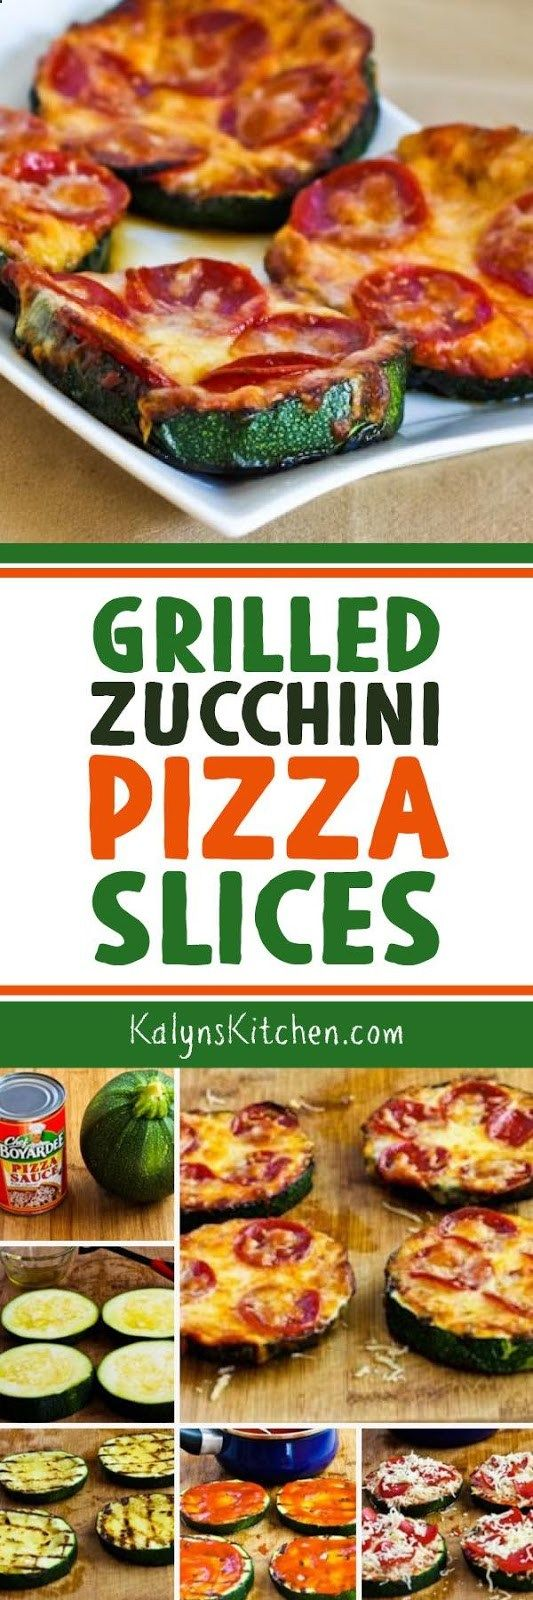 These Grilled Zucchini Pizza Slices from are the perfect way to use those giant zucchini that show up in late summer, and this recipe is low-carb, gluten-free, and South Beach Diet friendly. [found on KalynsKitchen.com]